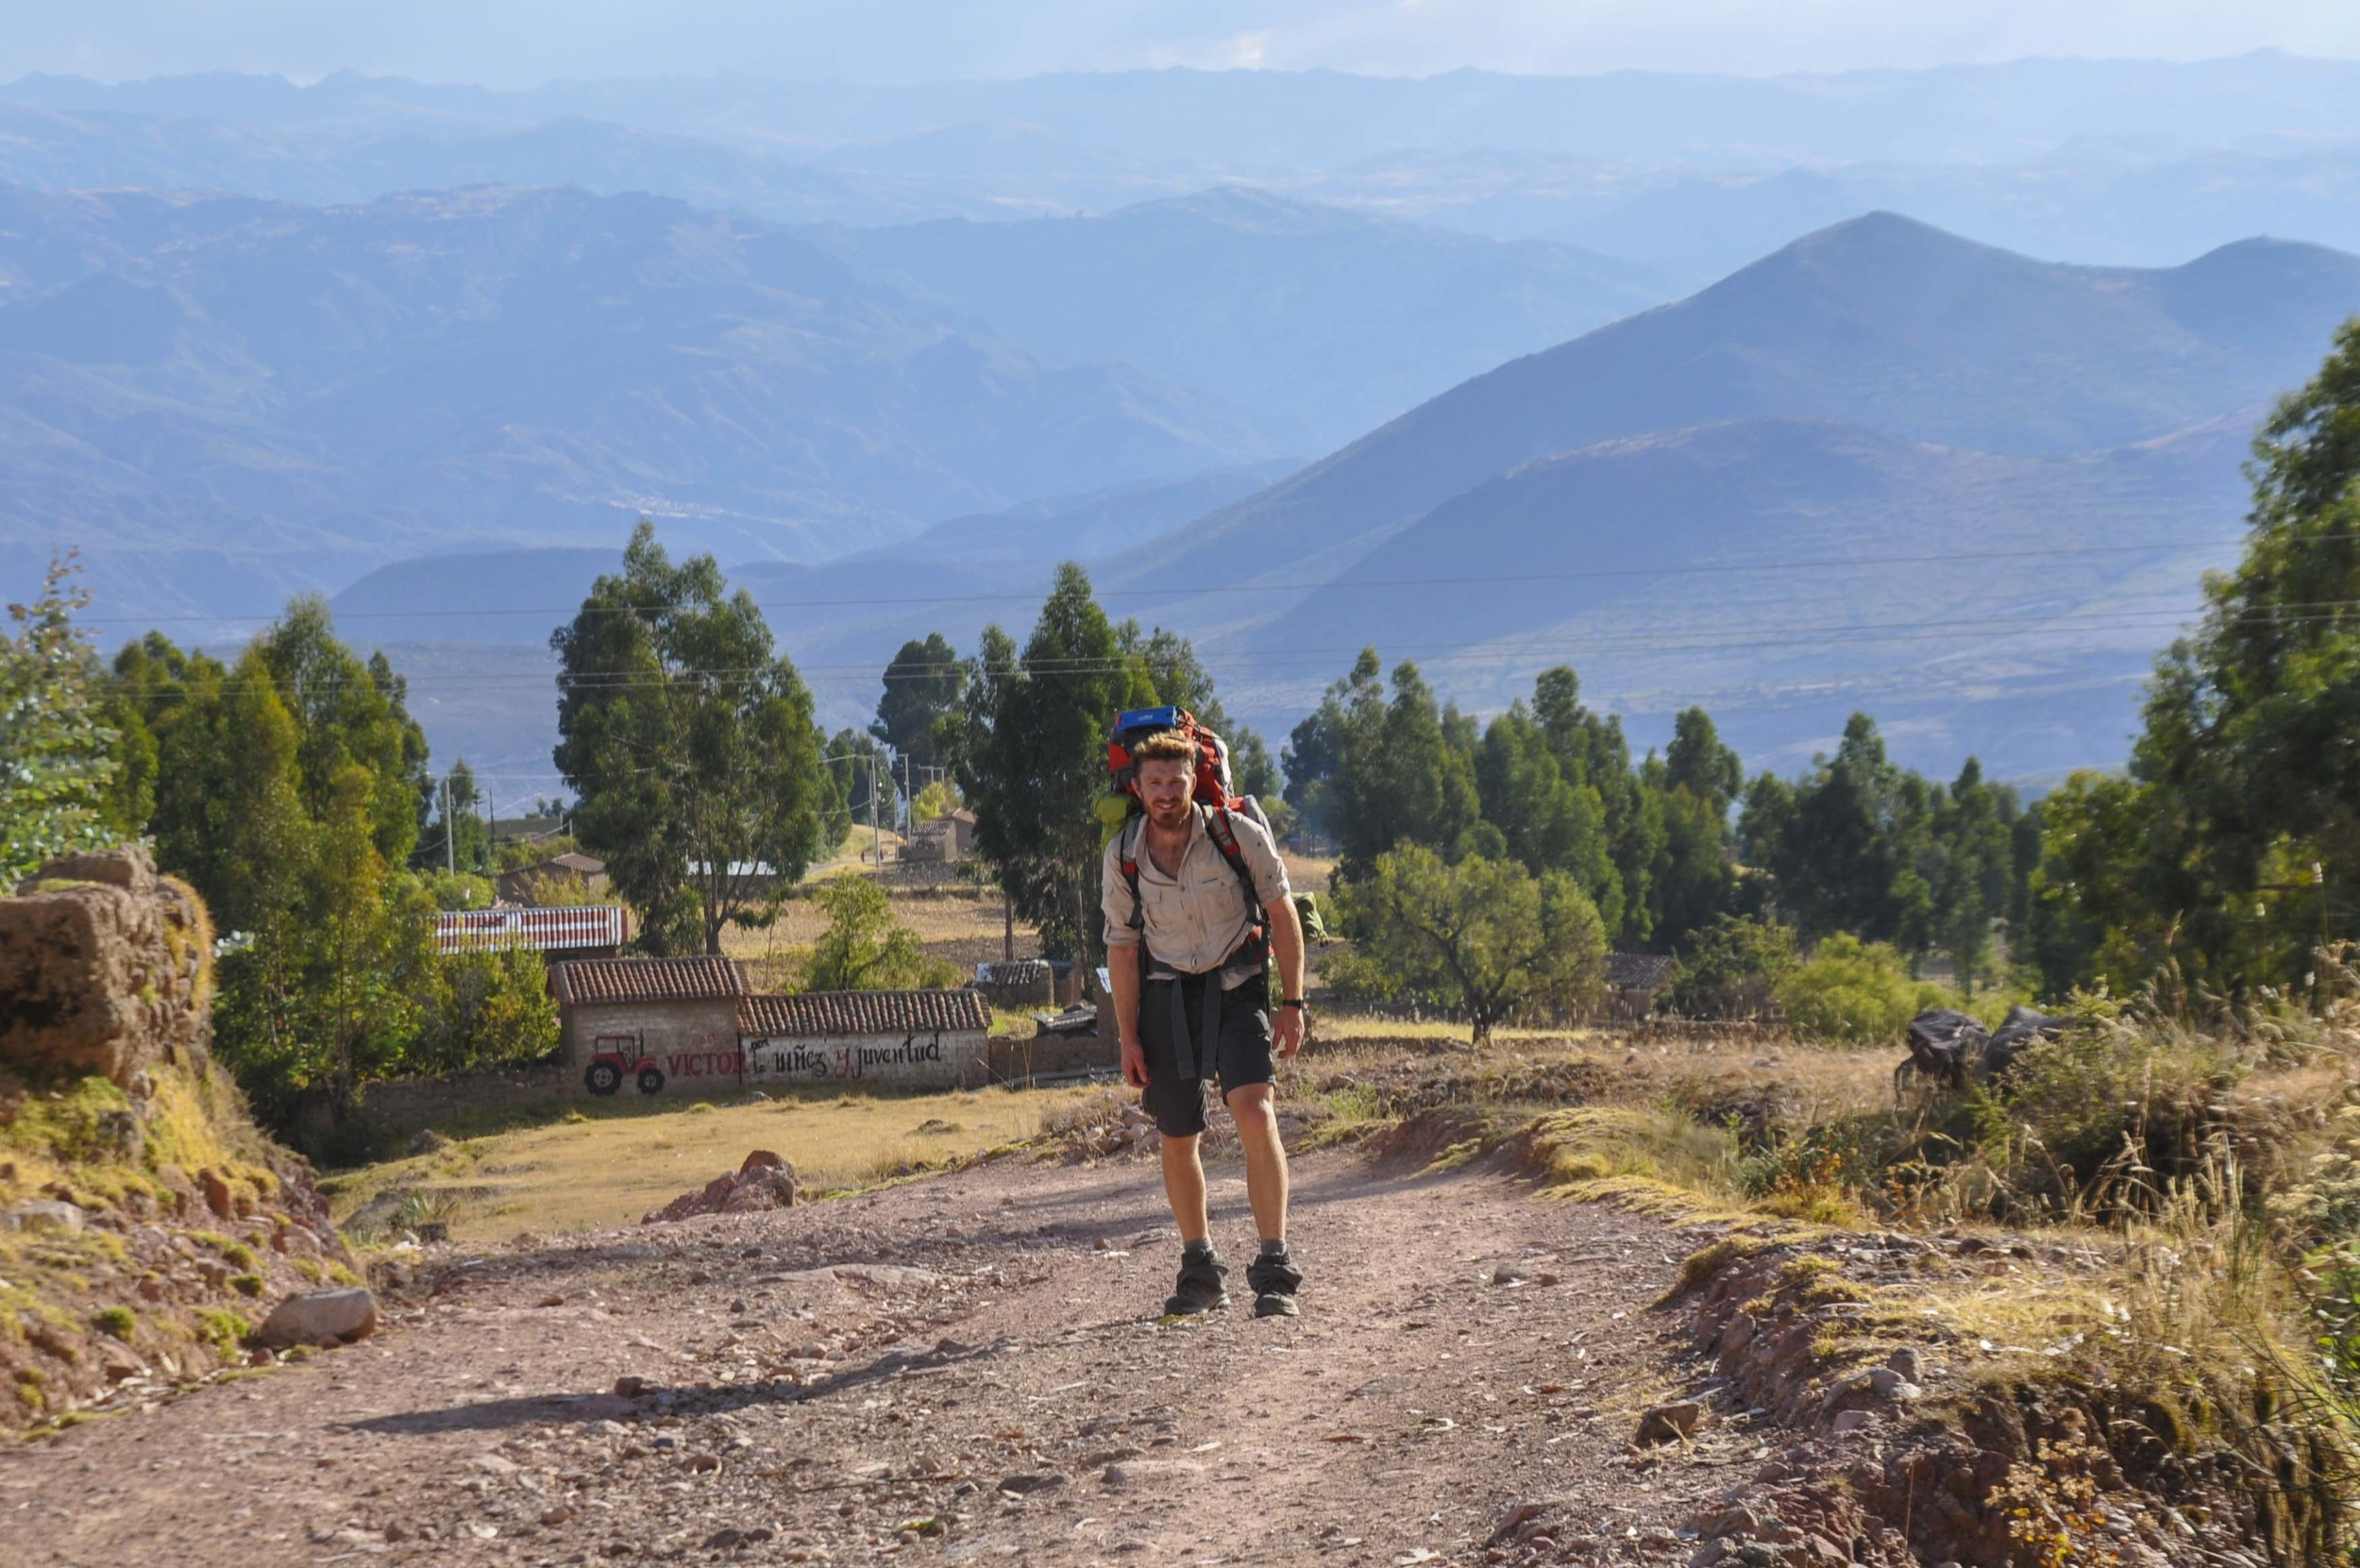 Hiking back up to 4,000m